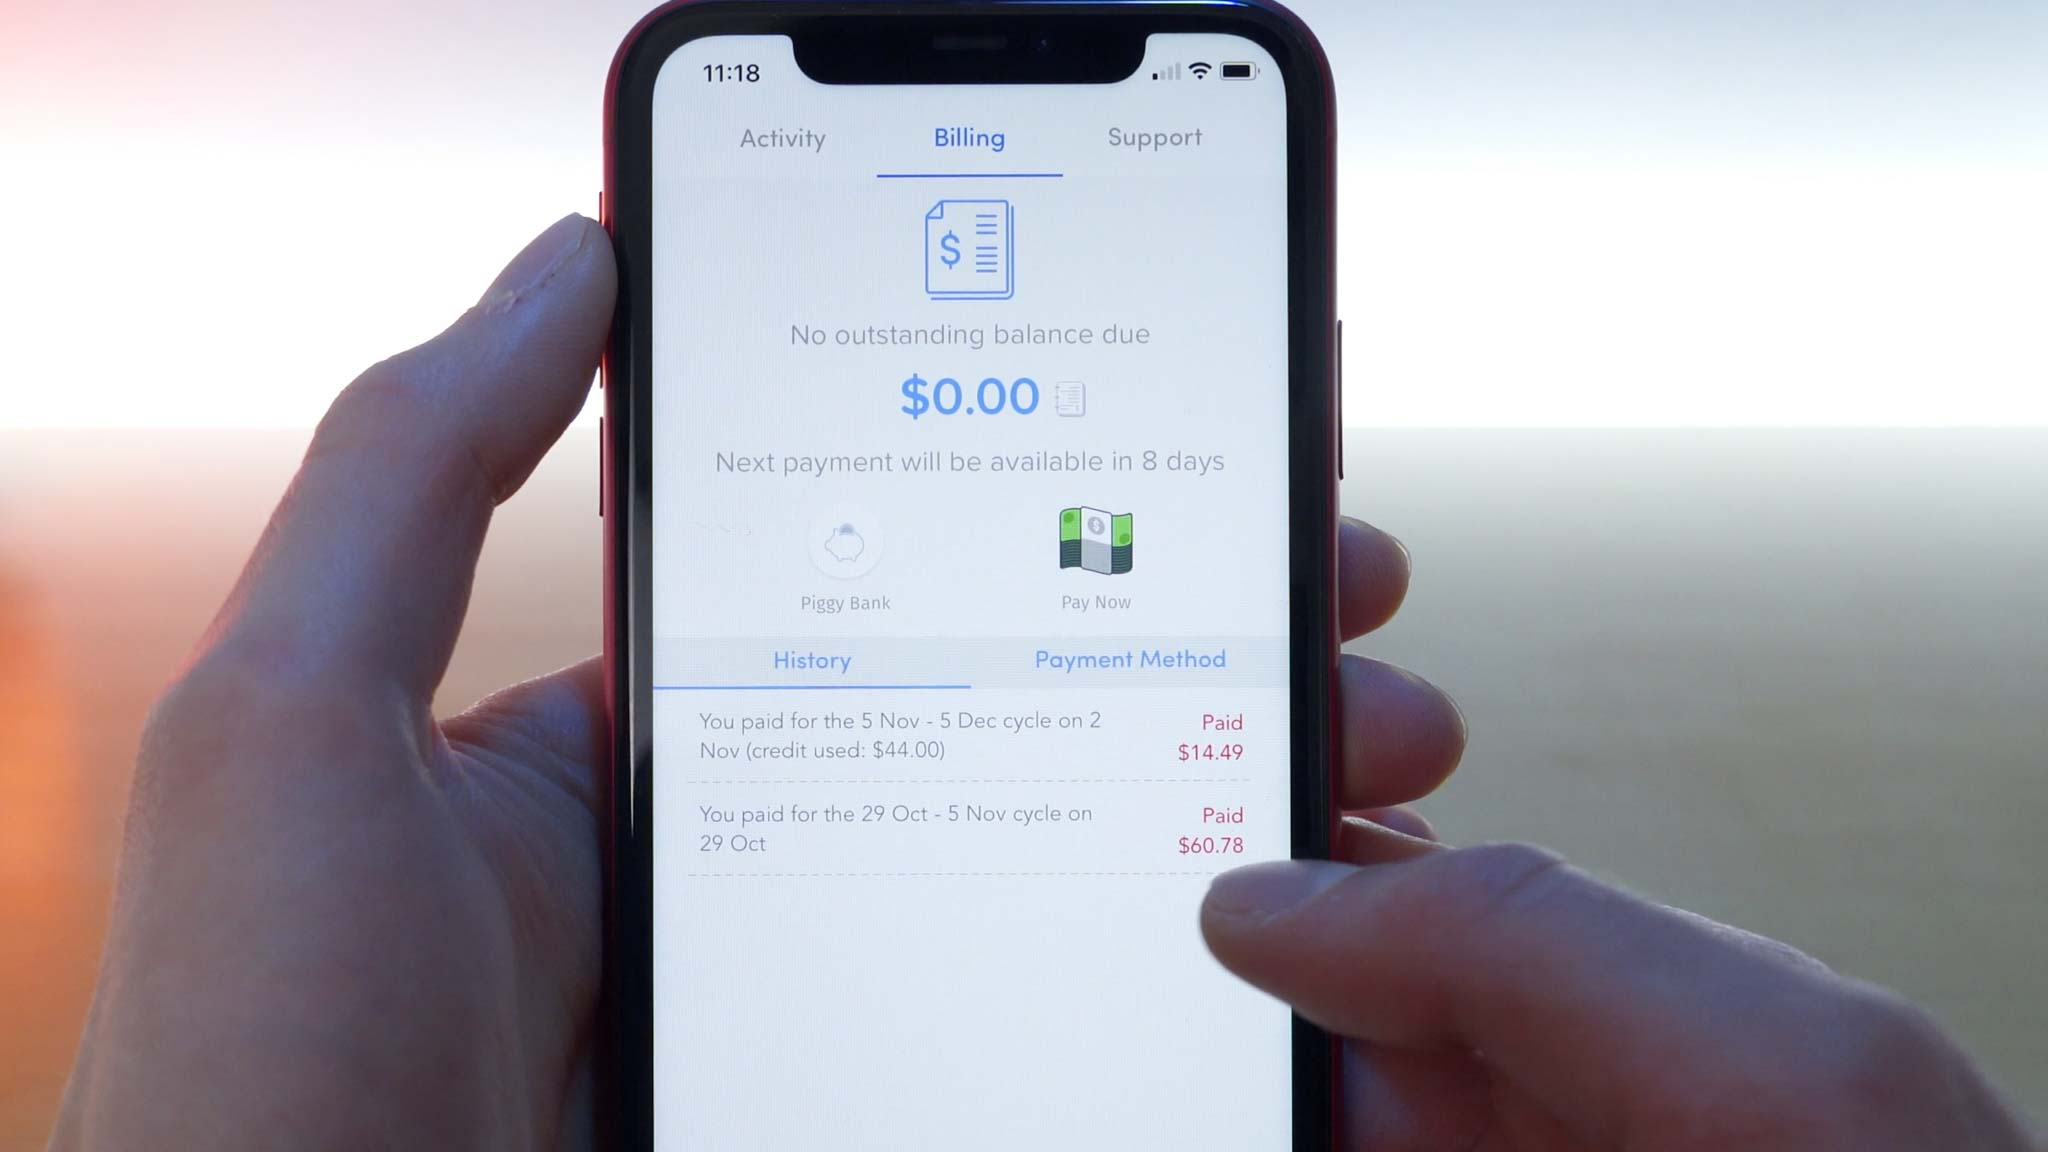 iPhone 11 Pro open to Wing app billing page showing cost of first month of service was $60.78